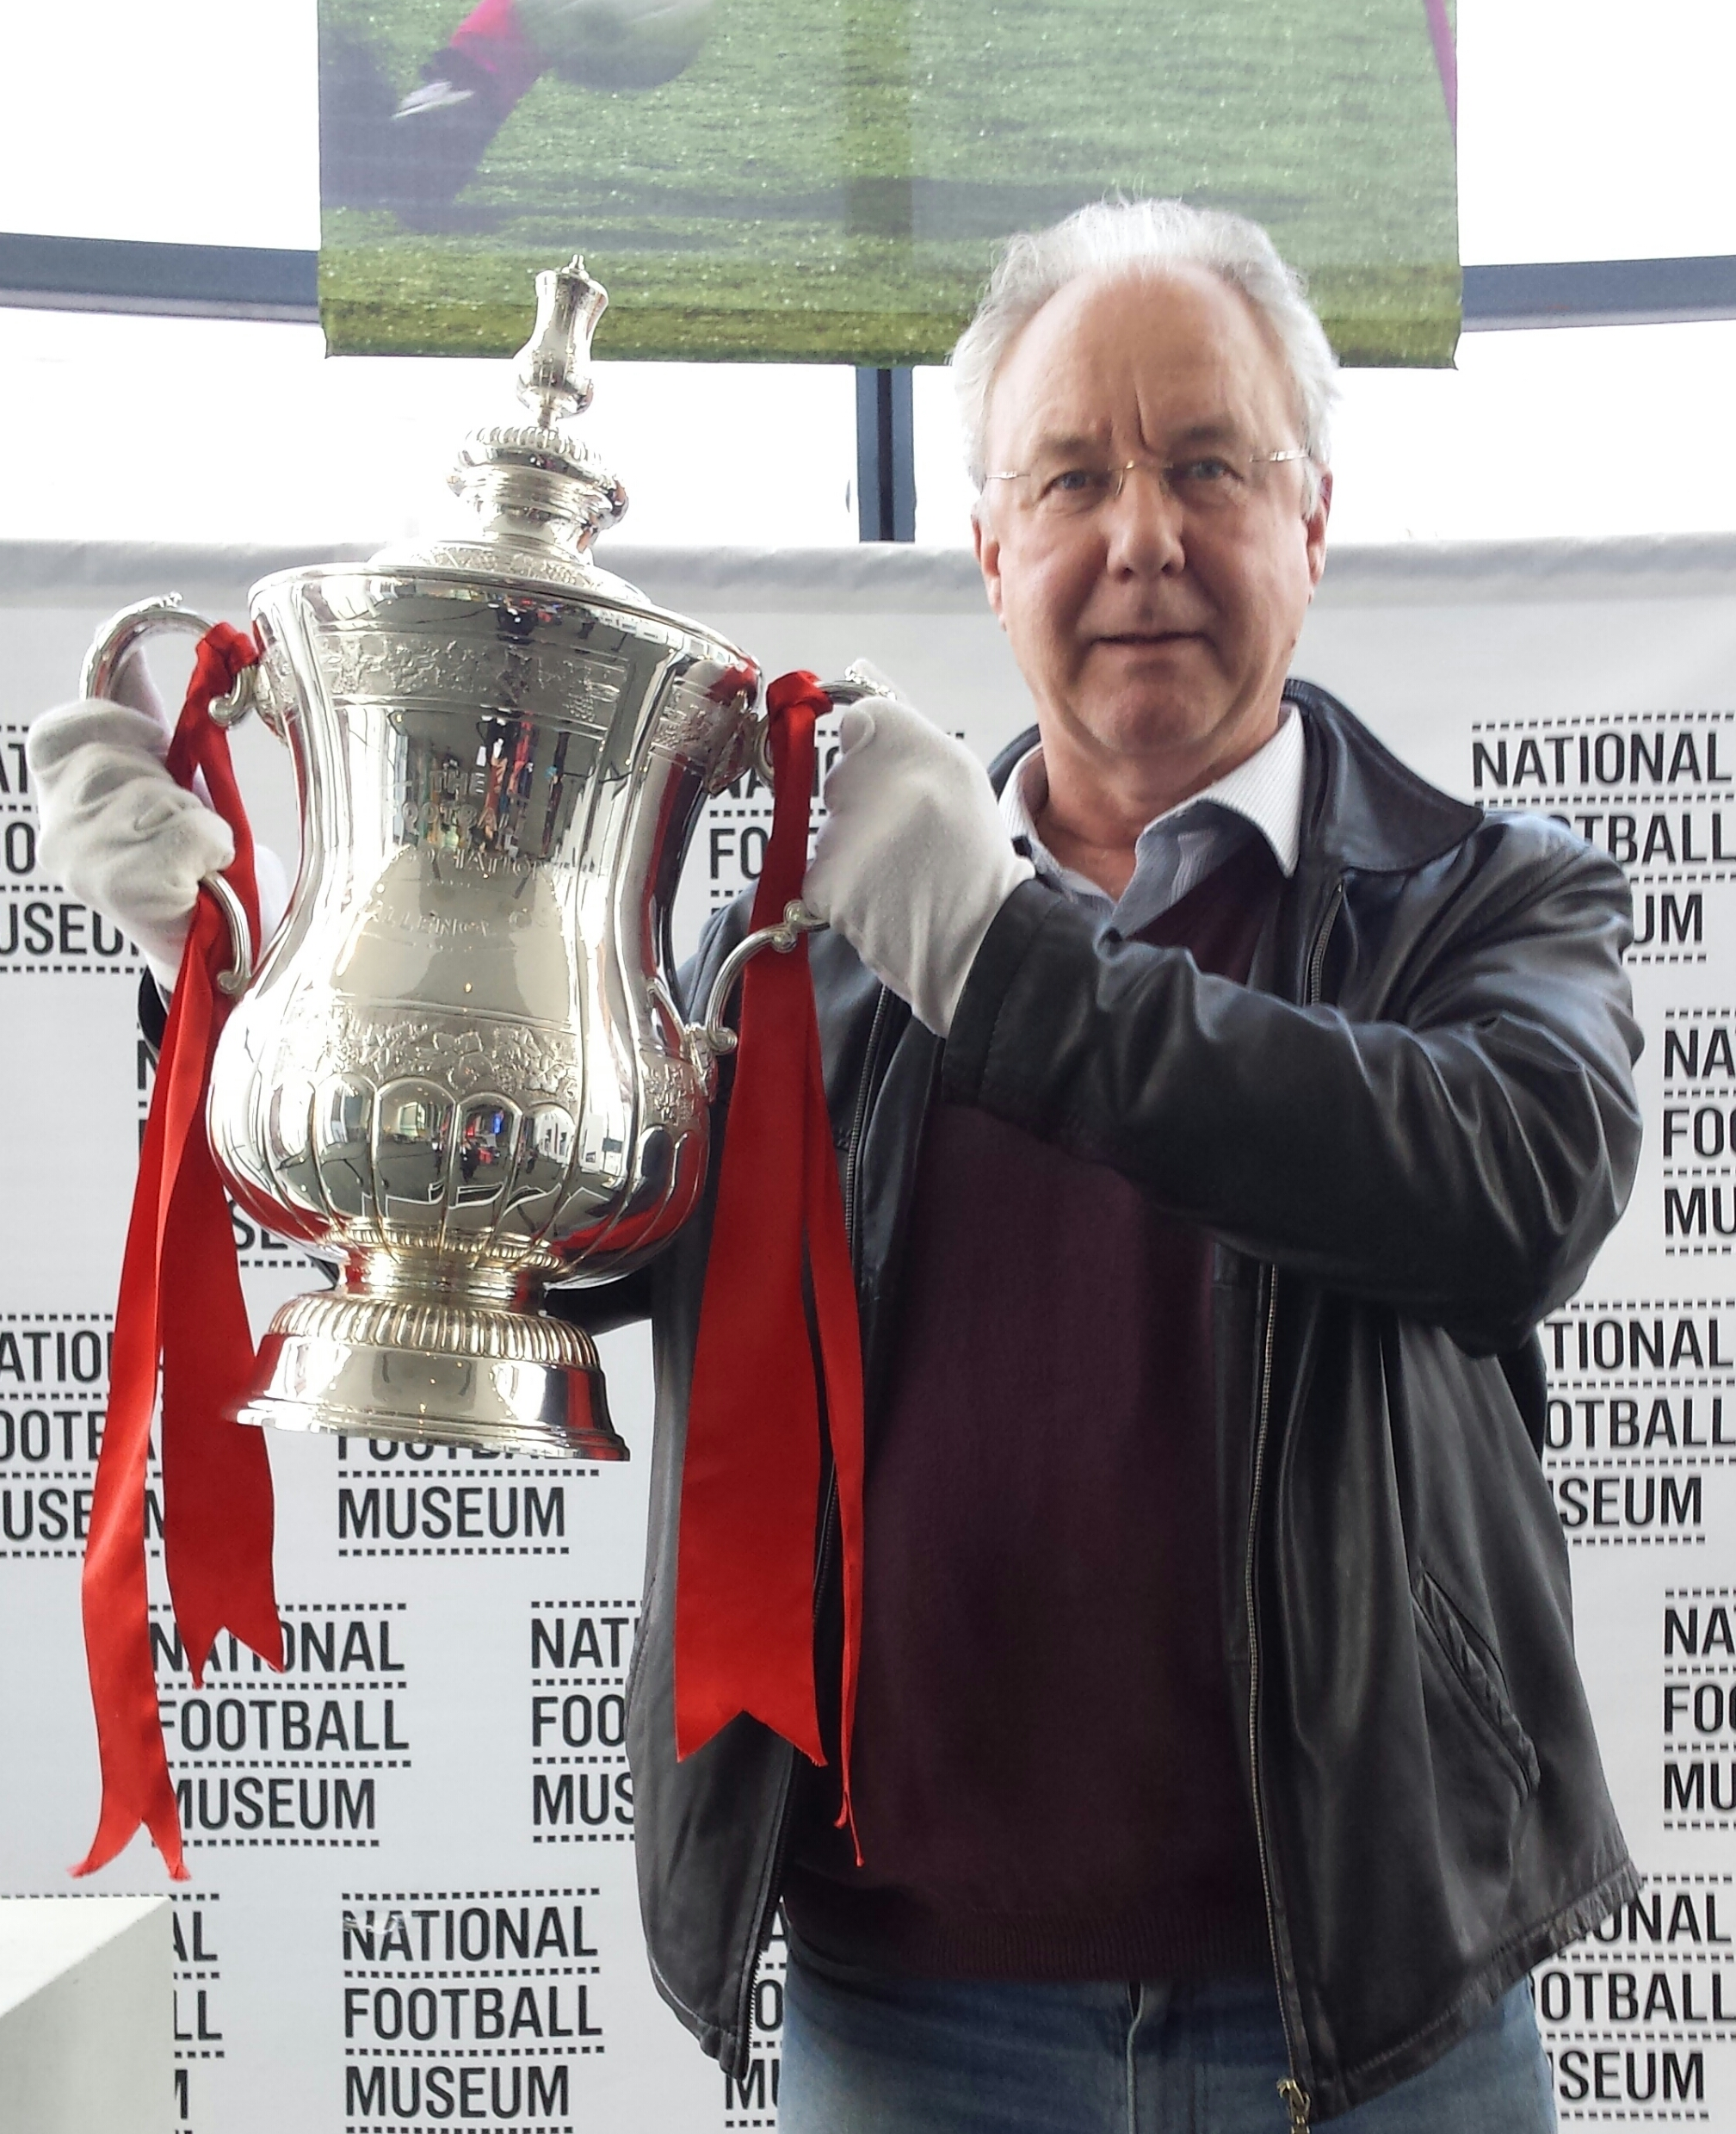 FA CUP WITH ME